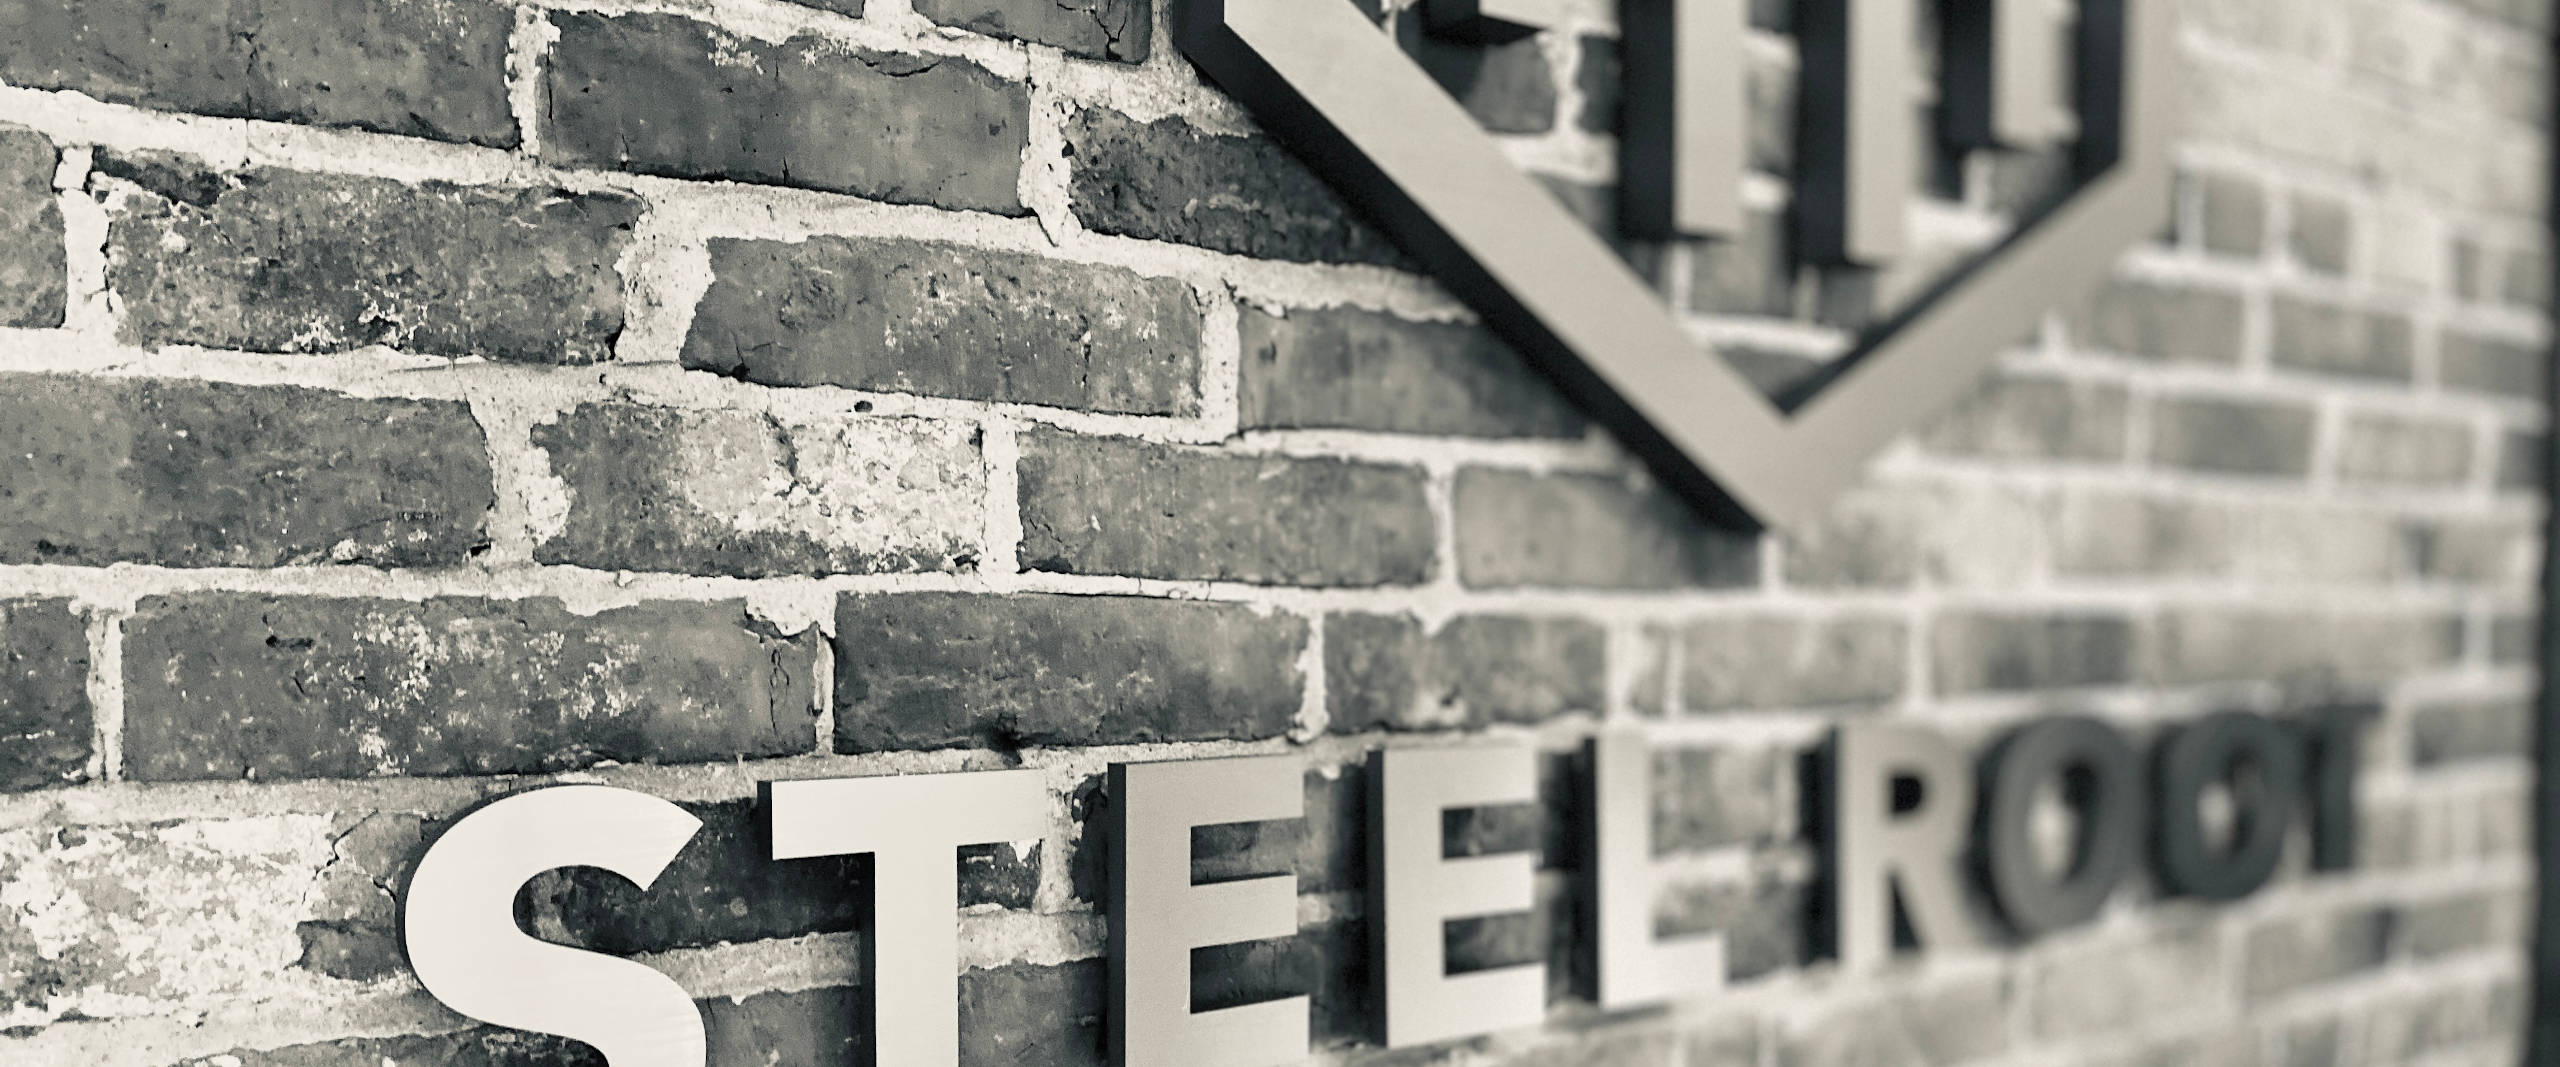 Photo of three dimensional Steel Root logo on a brick wall.